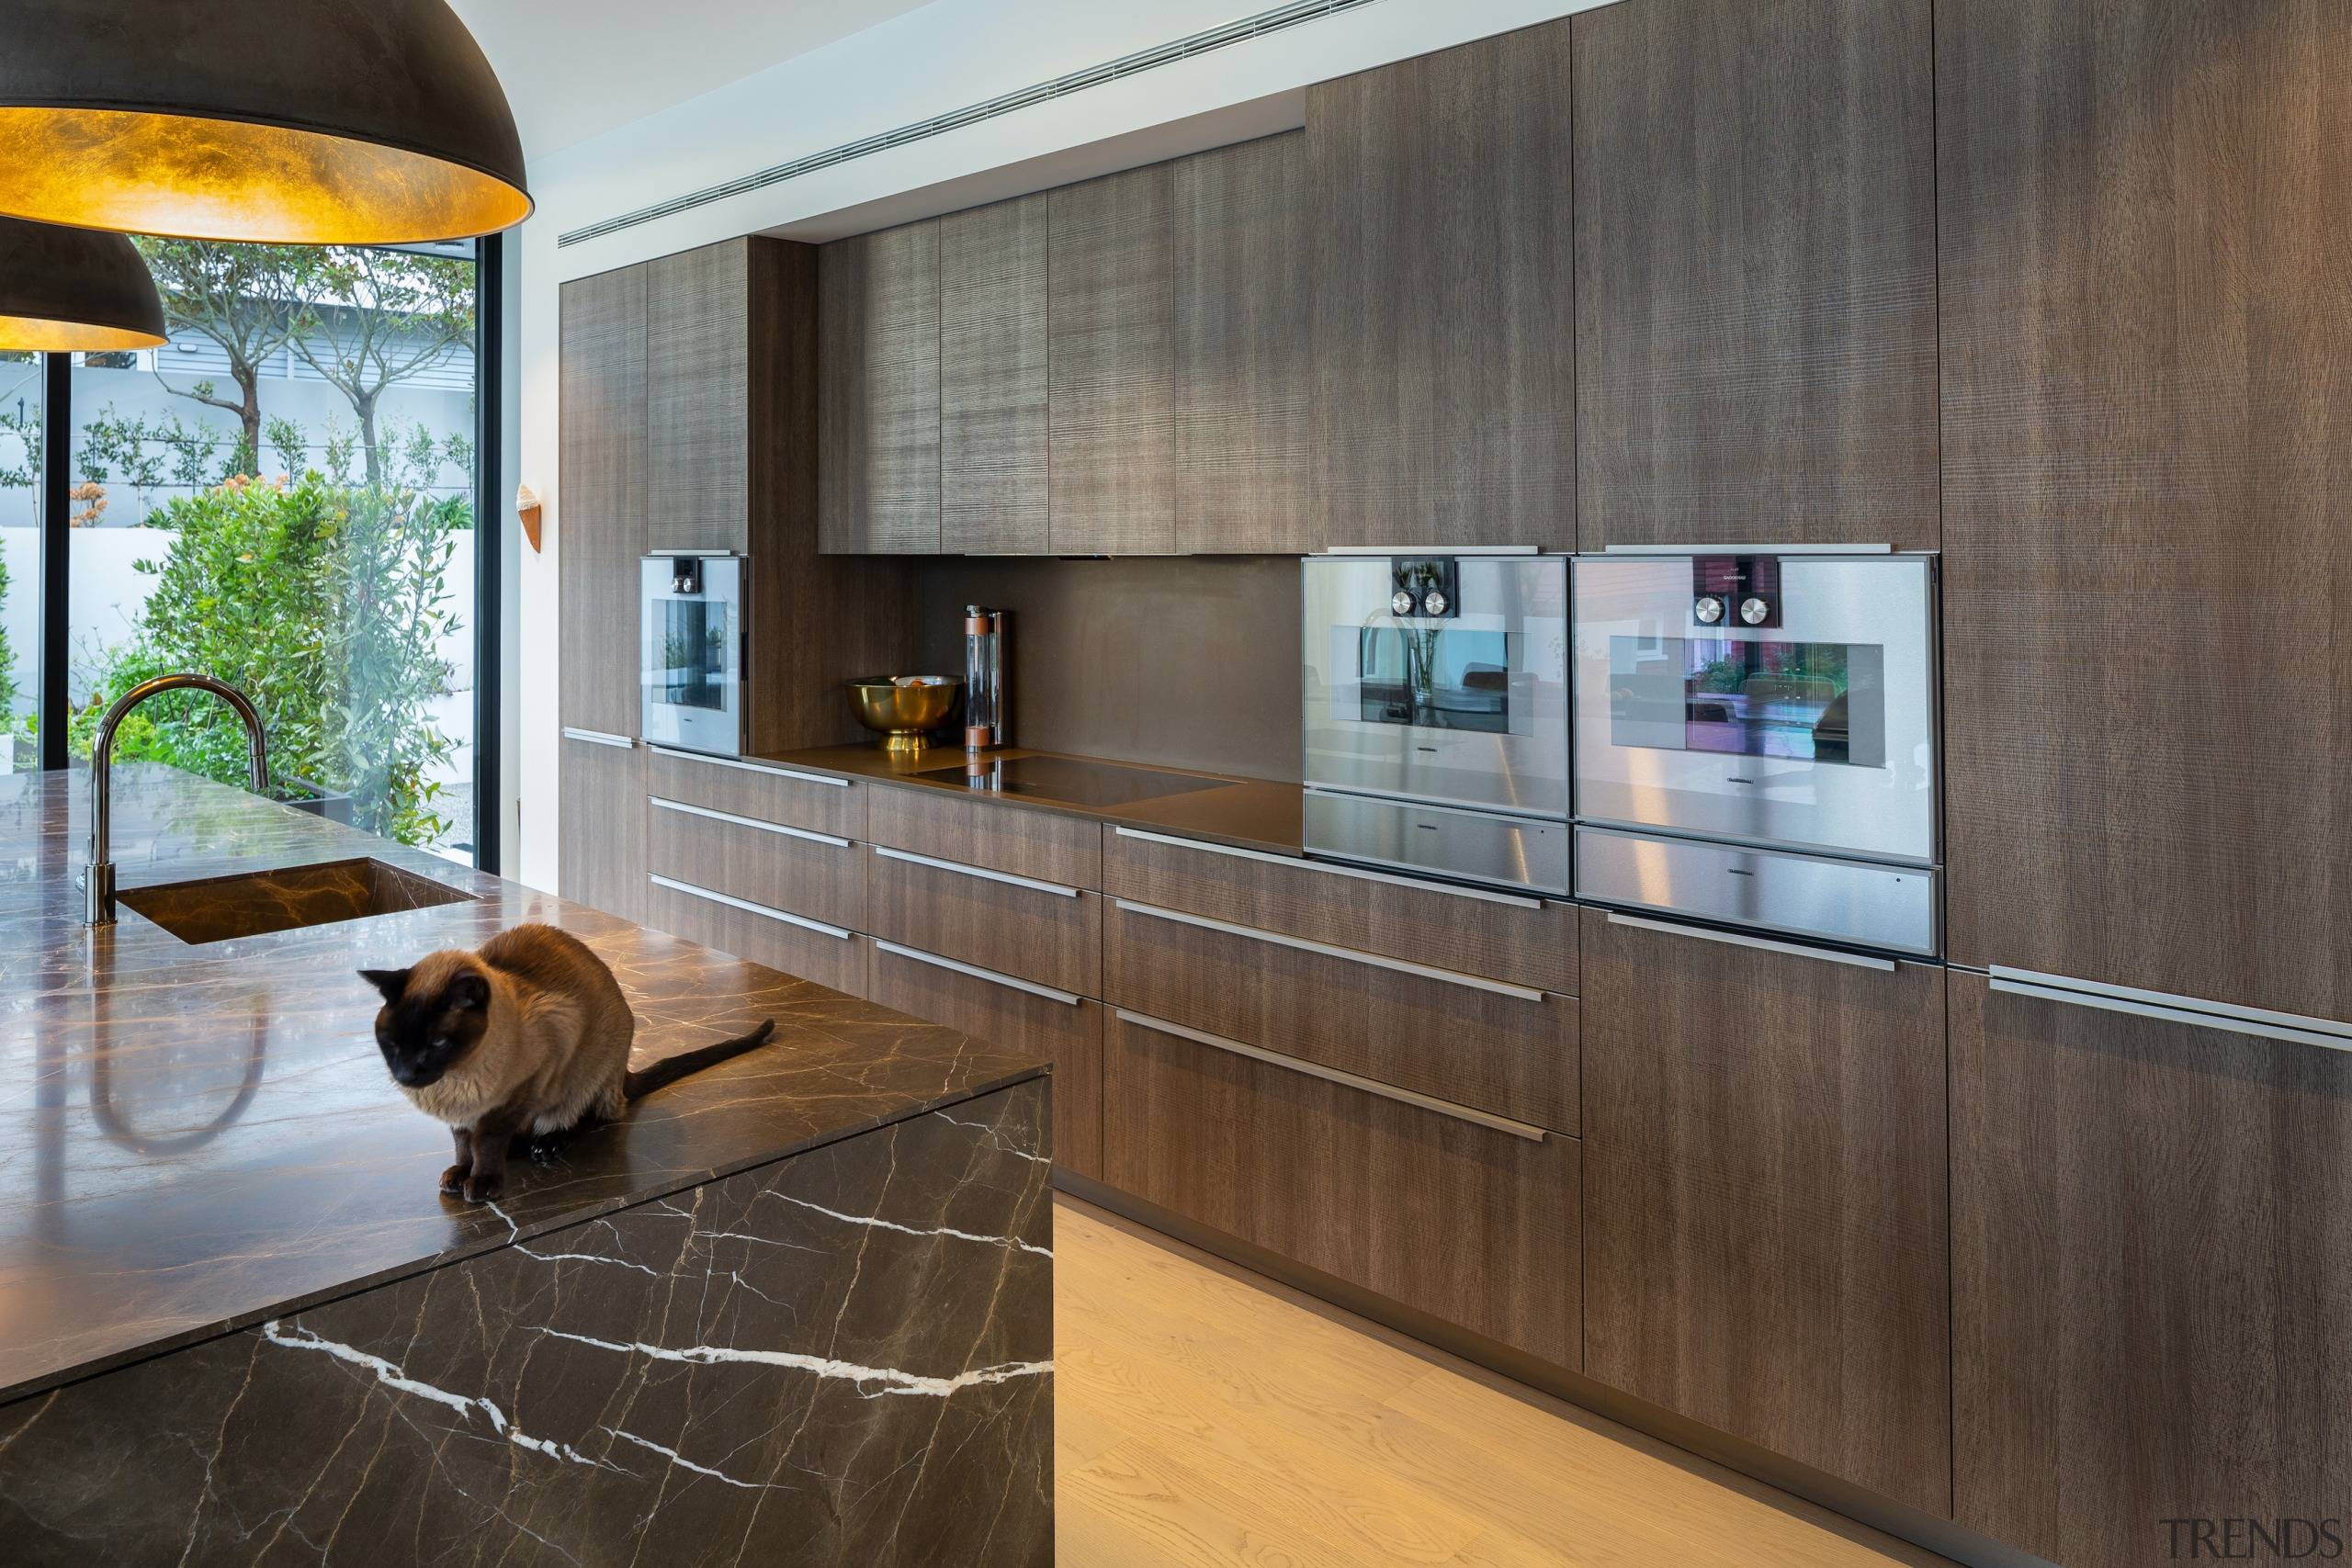 The handless upper cabinetry contributes to the kitchen's